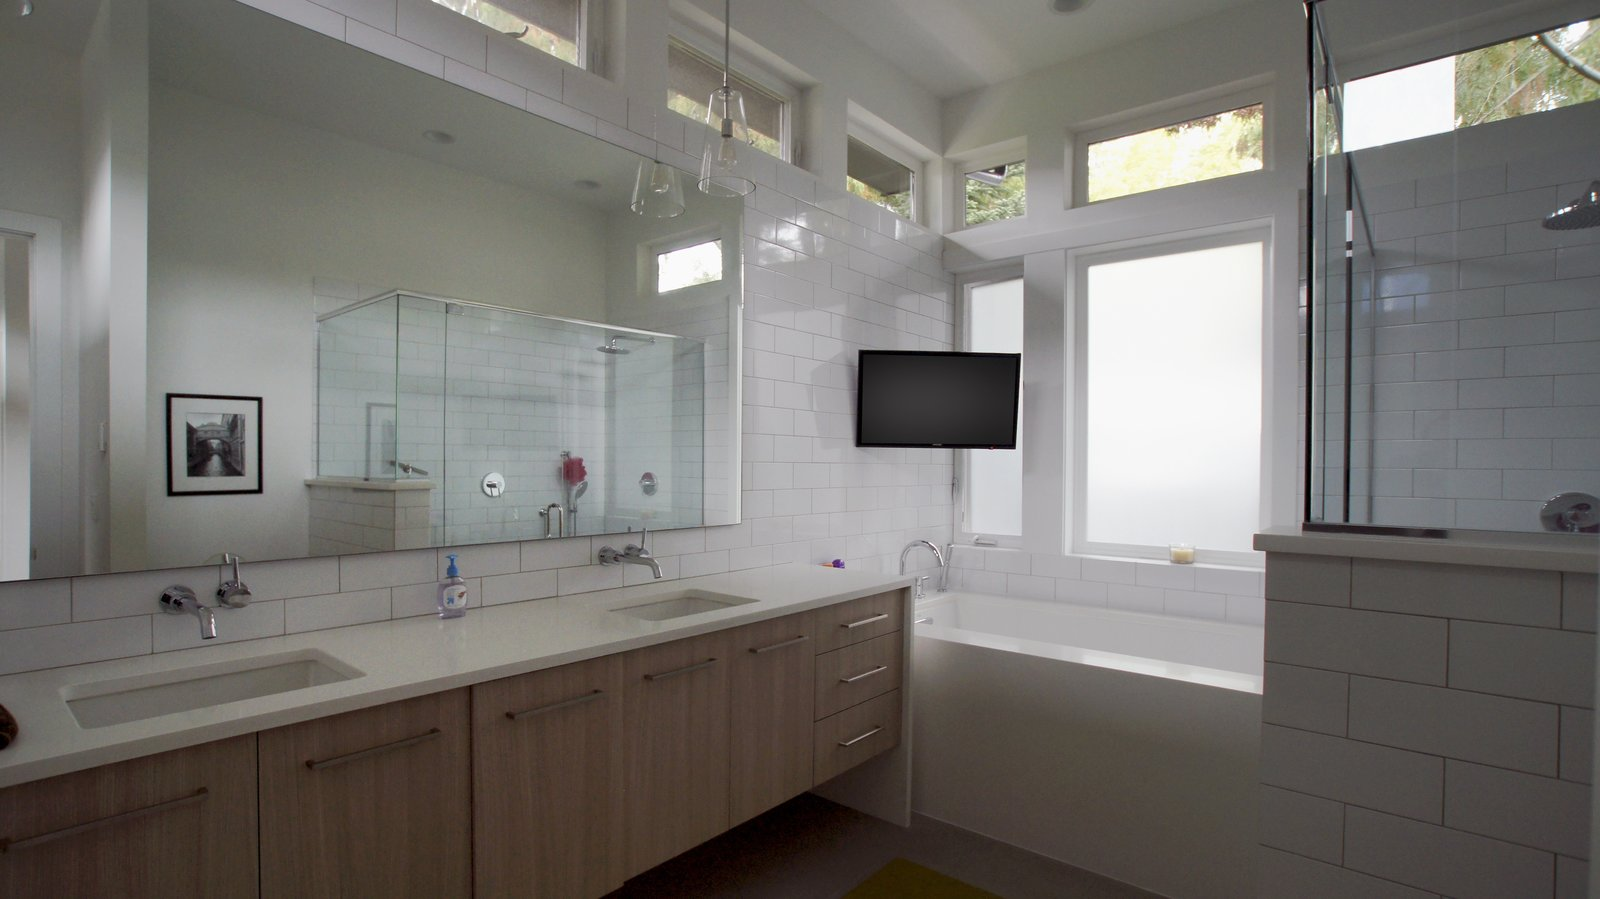 The master bathroom is a light-filled space of relaxation with a large bathtub as well a spacious shower. The tile backsplash provides a modern finish and every convenience was added to truly make this a room of leisure.